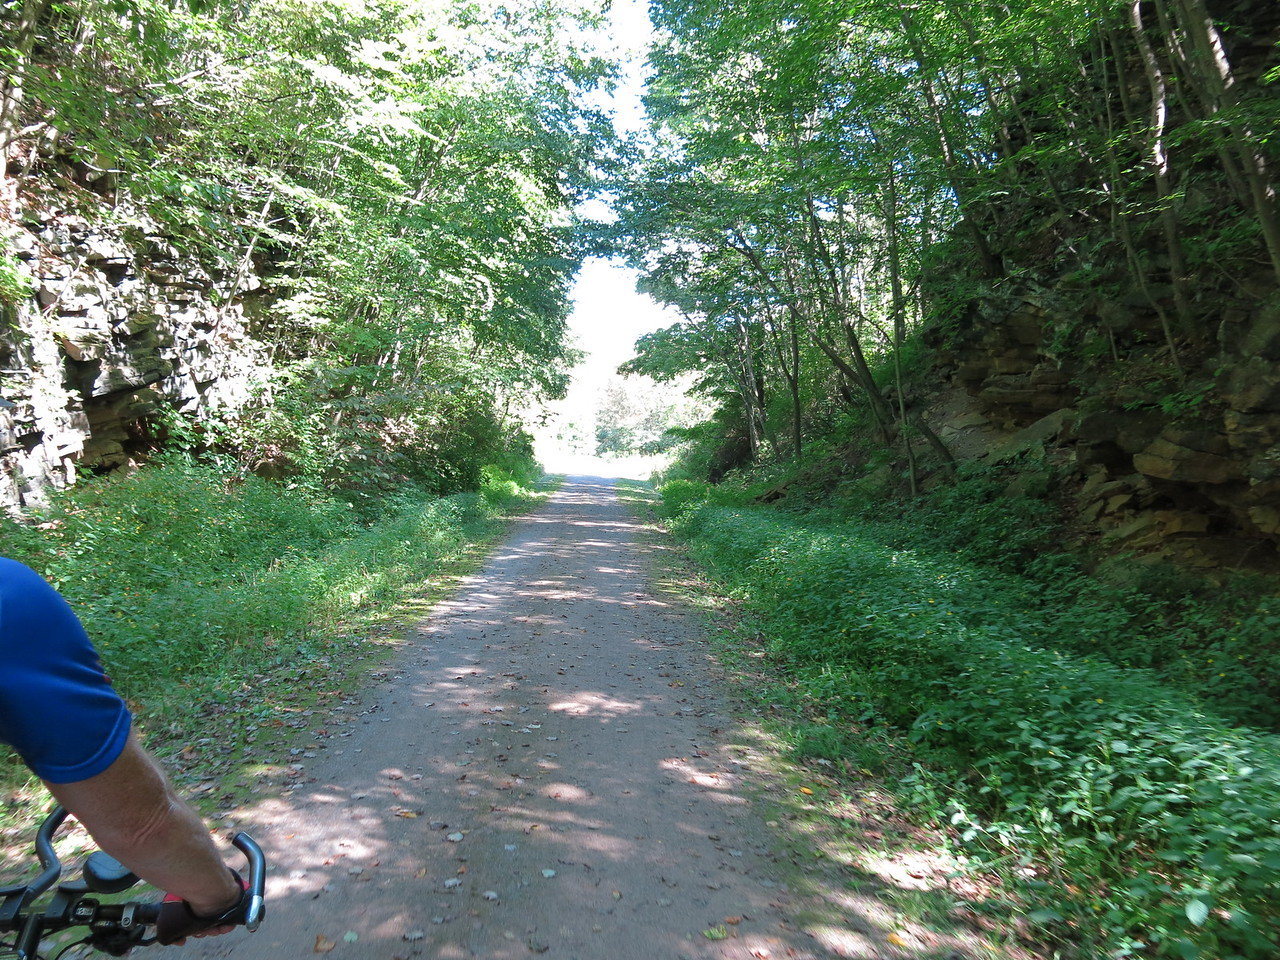 Leaving Meyersdale at MP 32